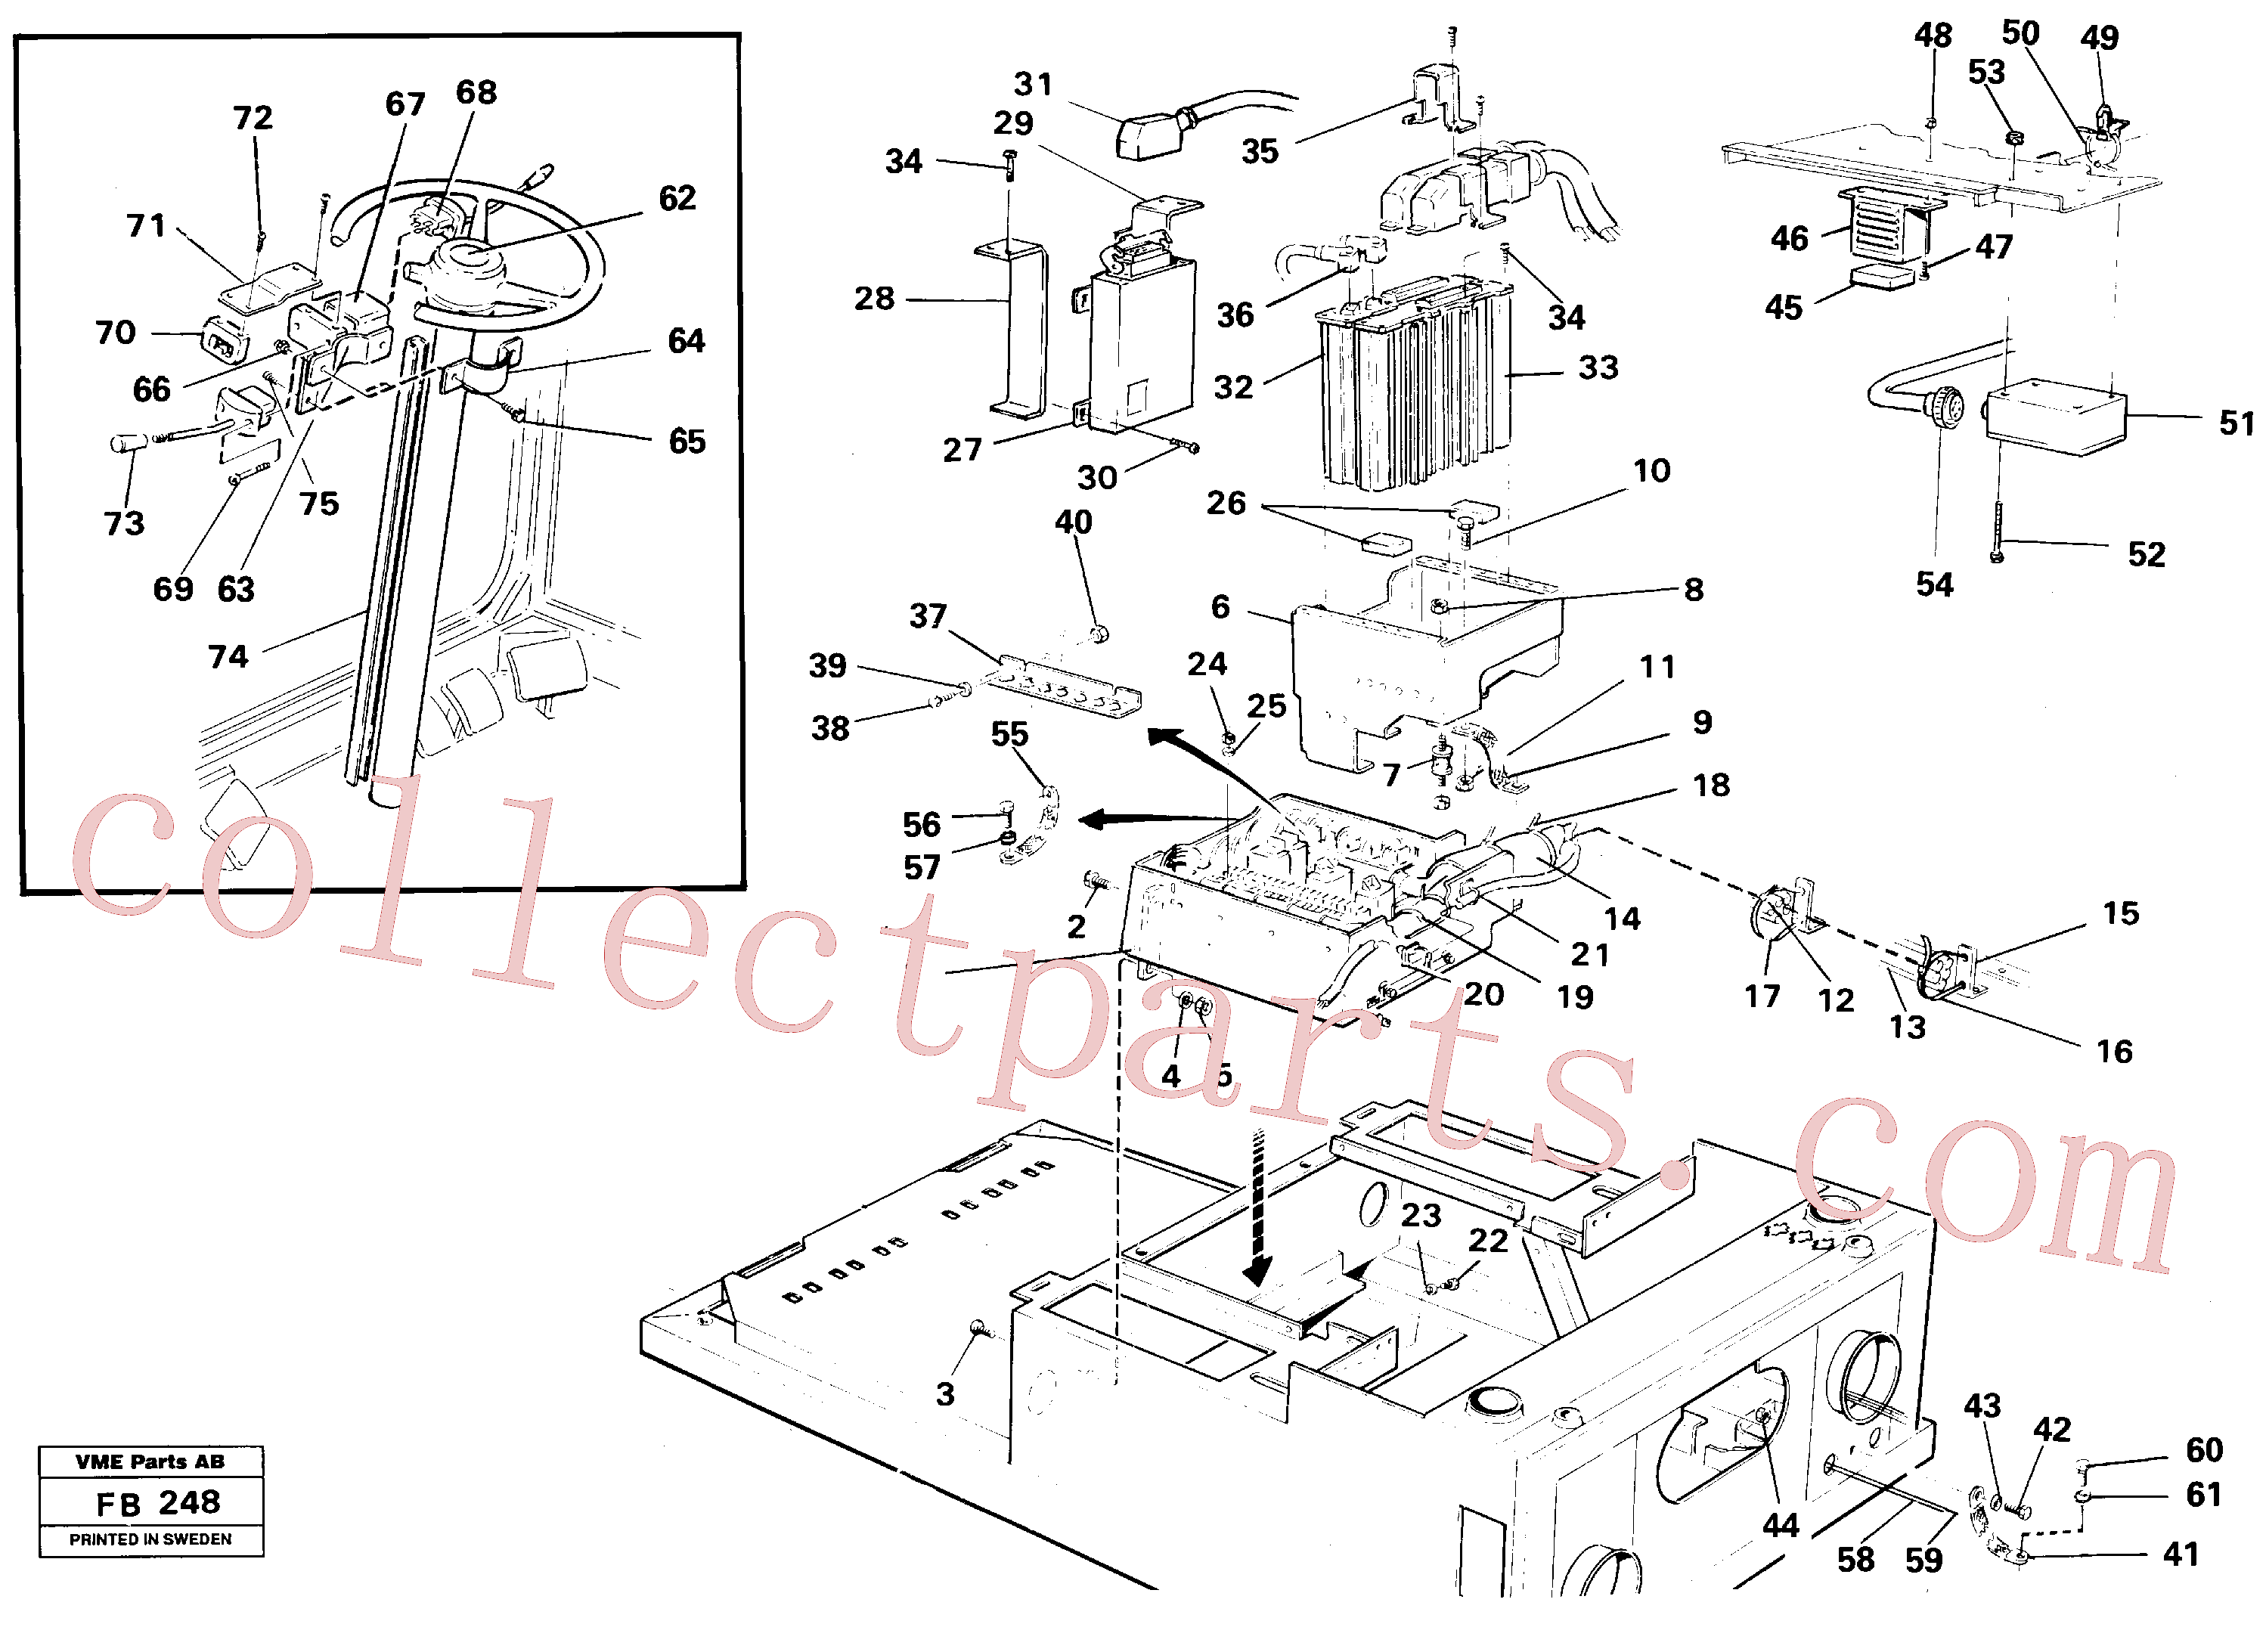 VOE14252722 for Volvo Electric installation on driver's seat(FB248 assembly)